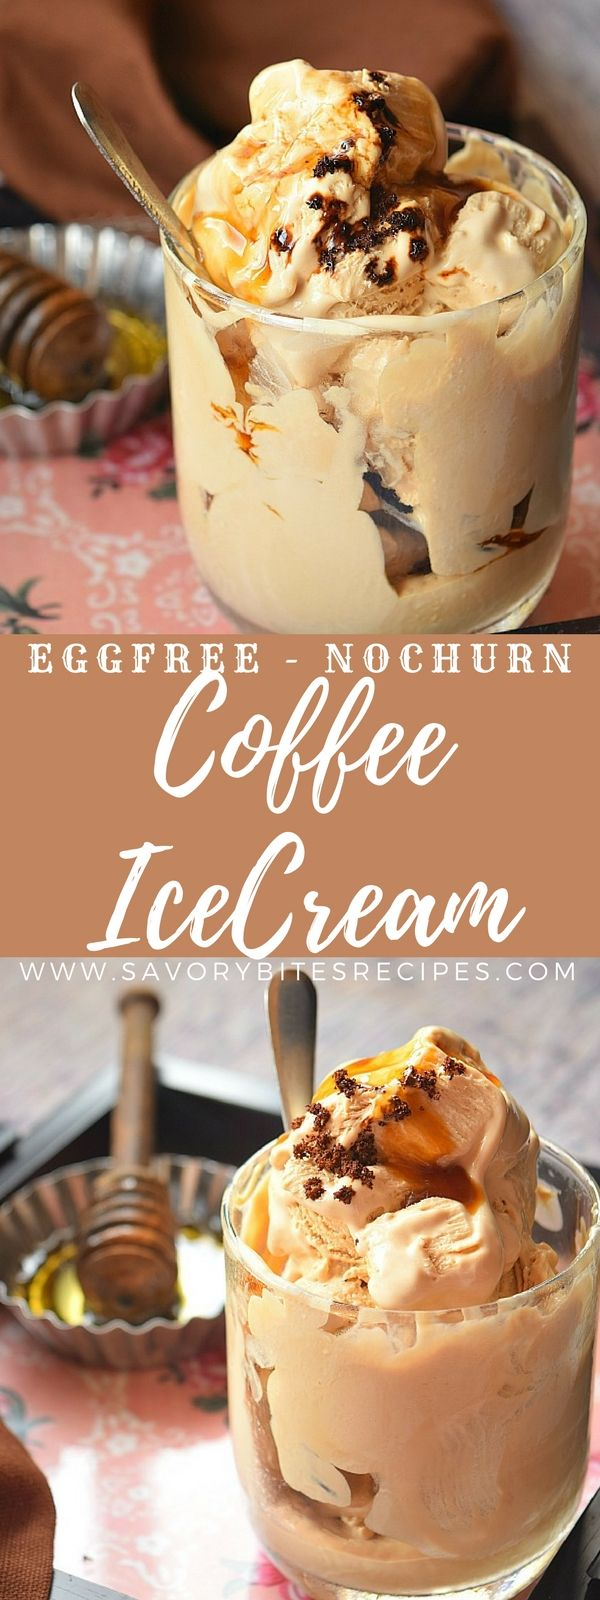 Delicious #eggfree #nochurn #coffee #icecream! Try this #recipe at home,so #easy and so #yummy.